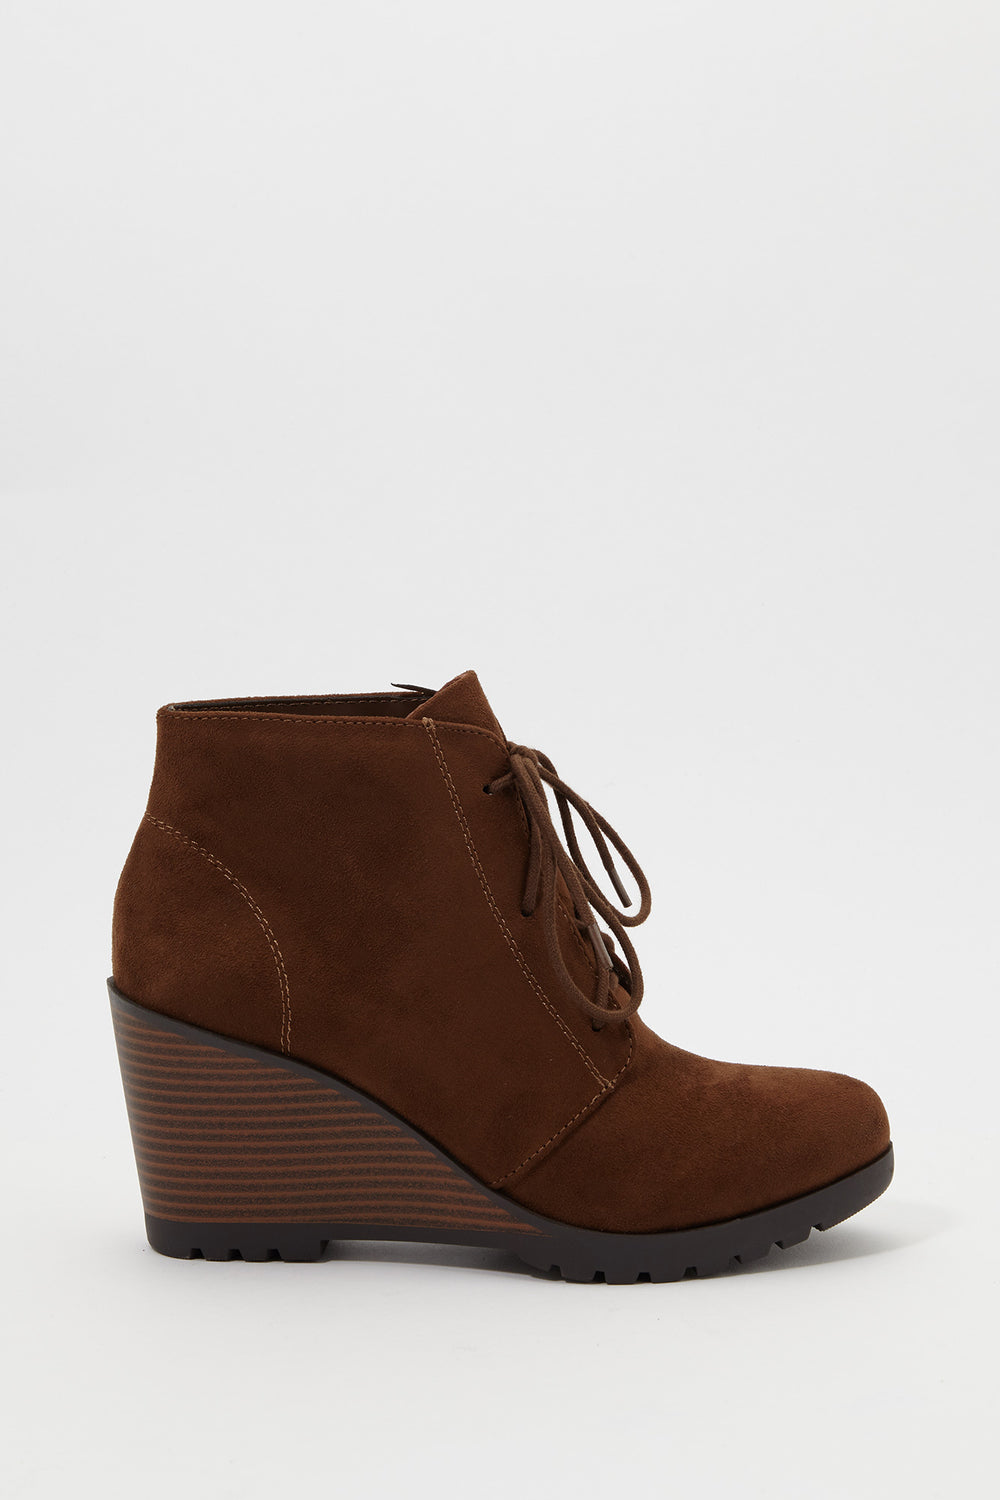 Lace-Up Wedge Heel Bootie Camel